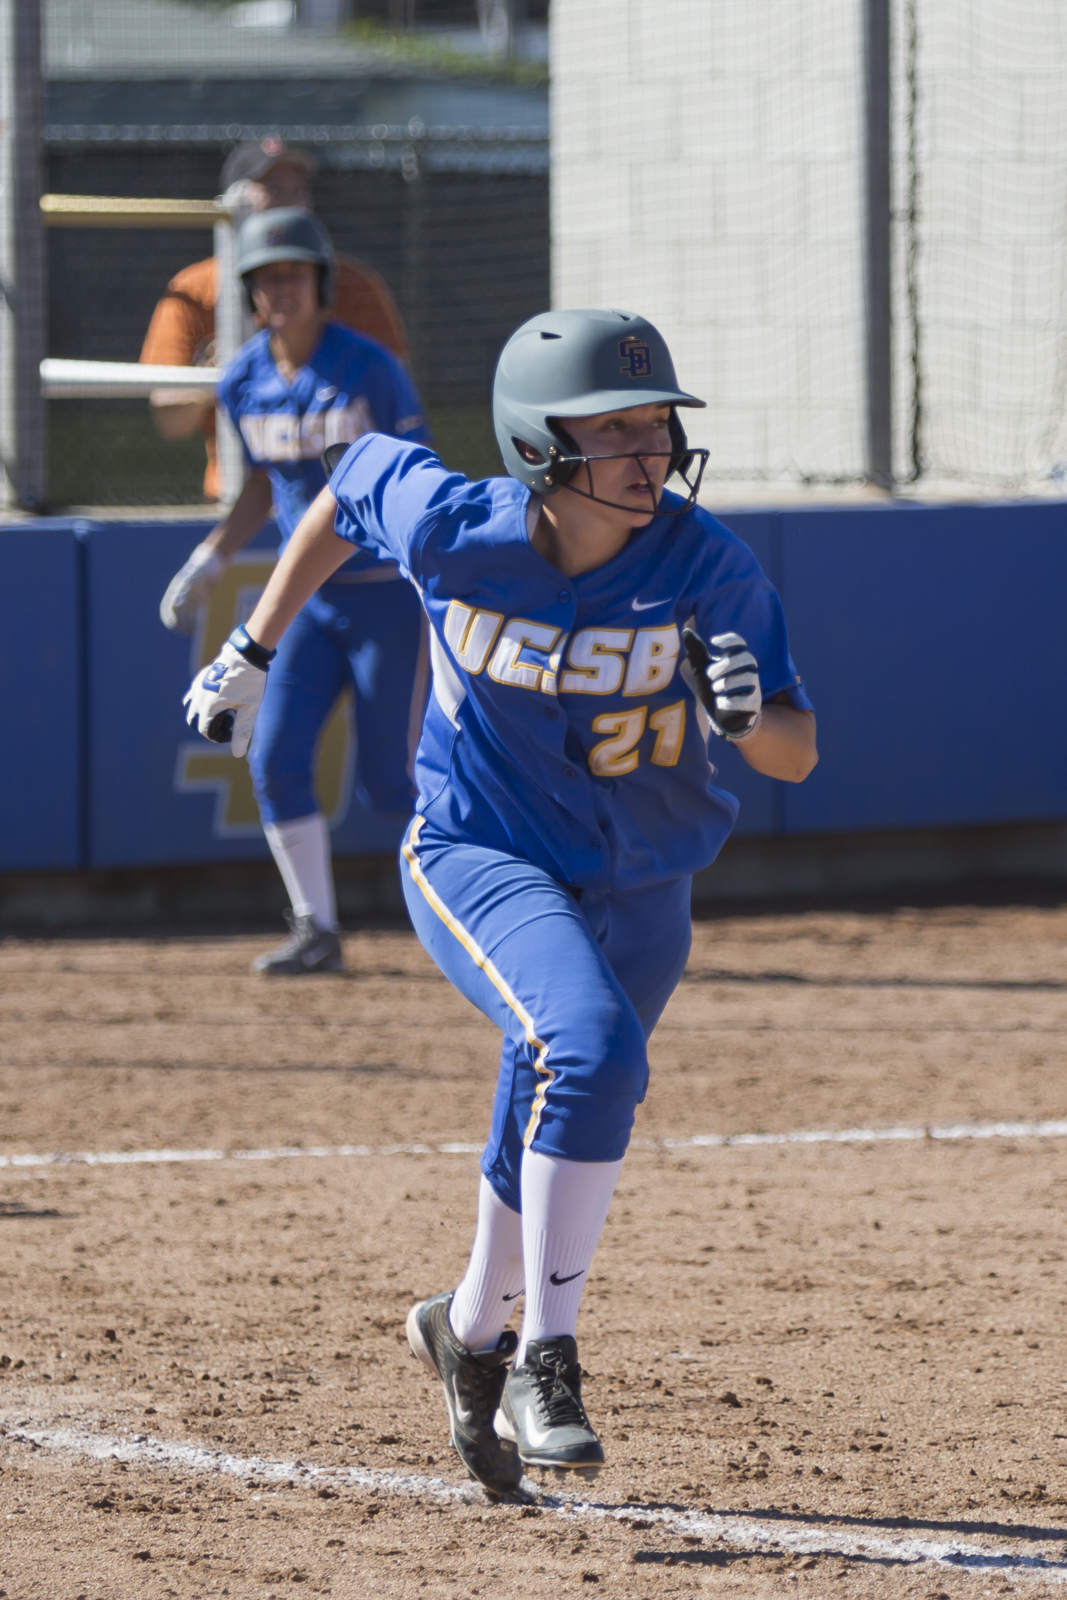 After hitting the ball, Arianna Palomares sprints to first base. Dustin Harris/Daily Nexus